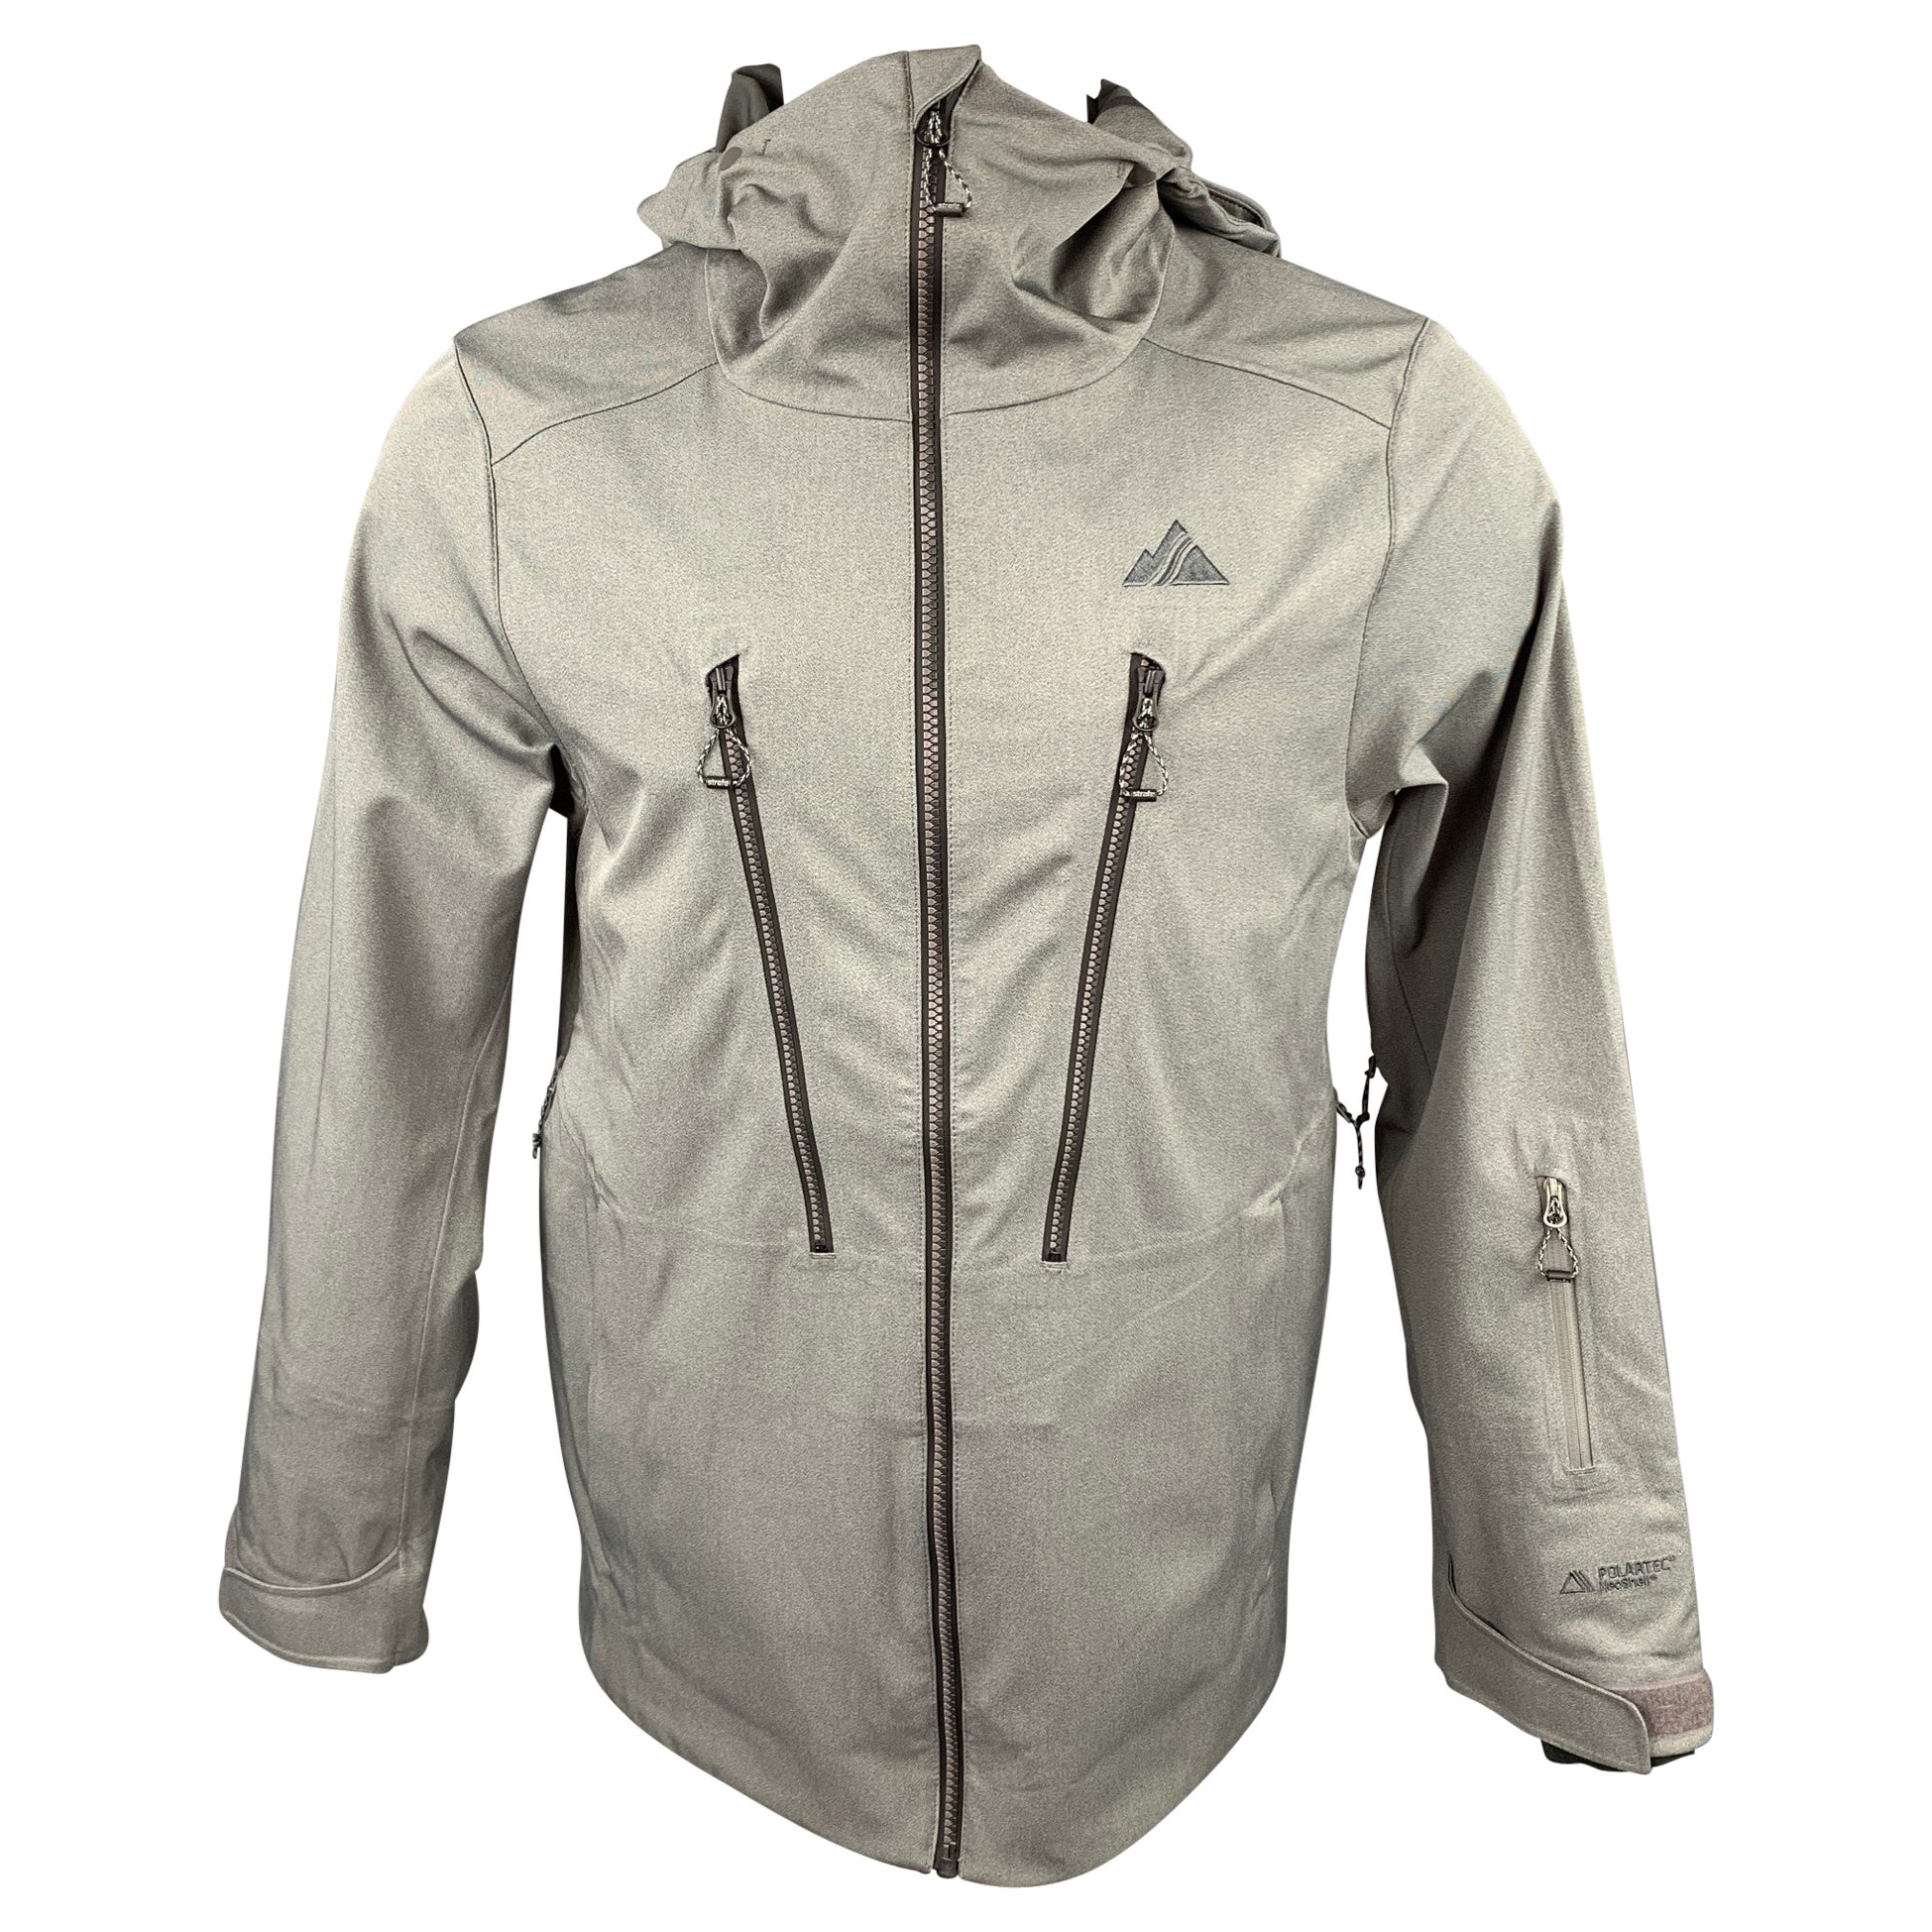 STRAFE Polartec Size S Grey Waterproof Polyester Hooded Jacket